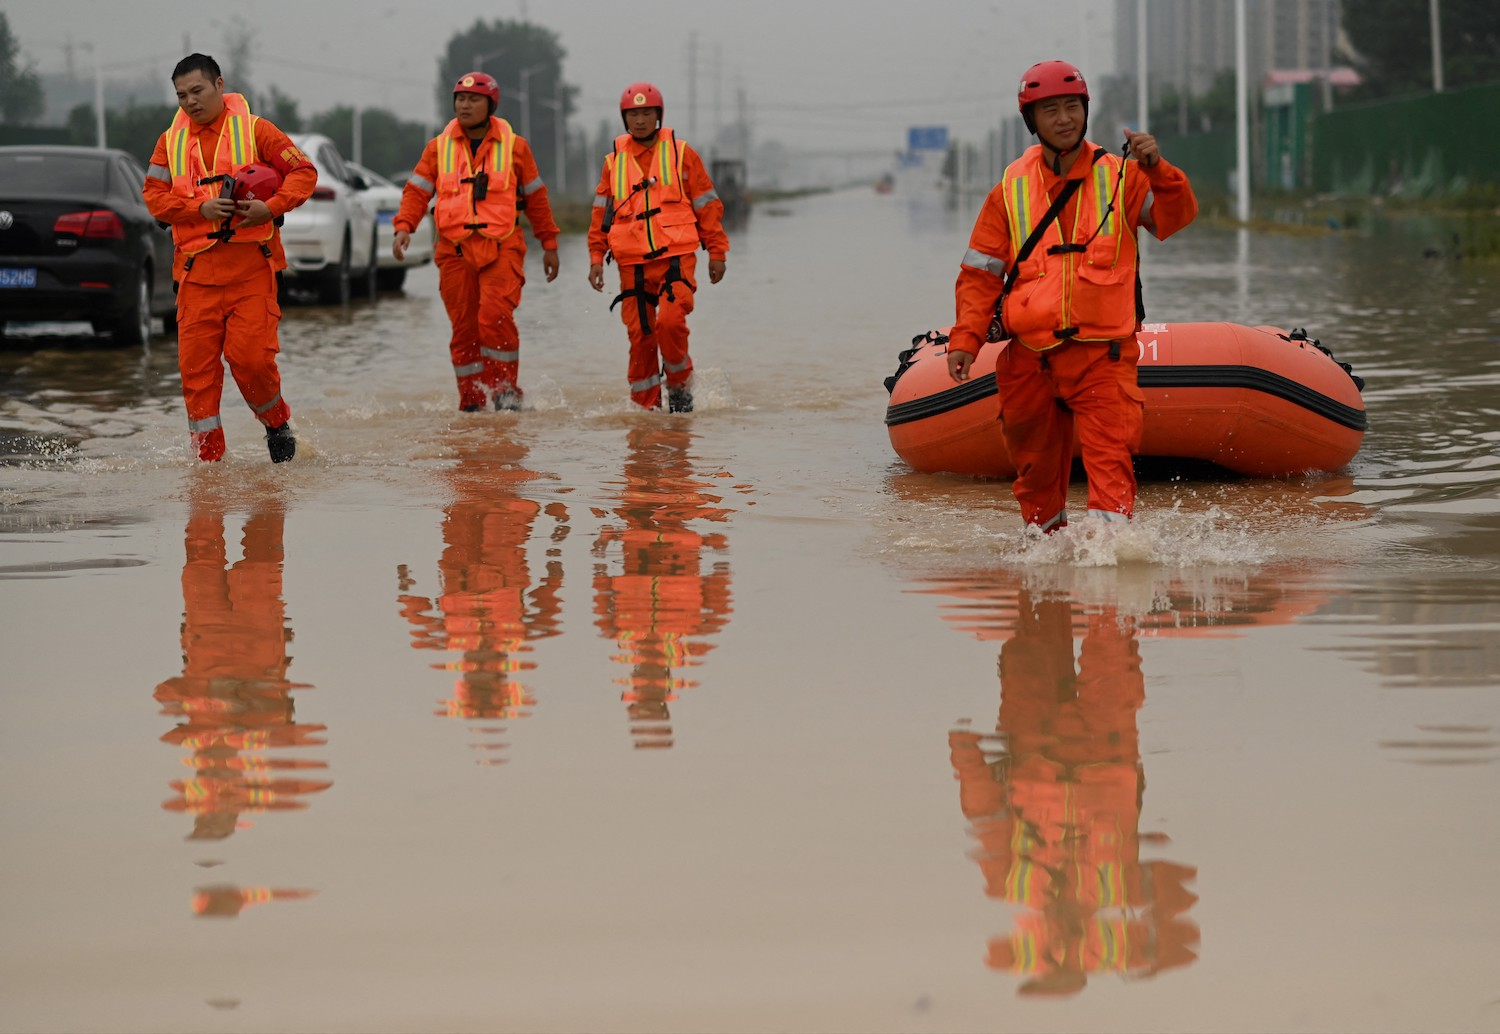 Rescue workers cross a flooded street following heavy rain that claimed the lives of at least 33 people in Zhengzhou, China, on July 23.